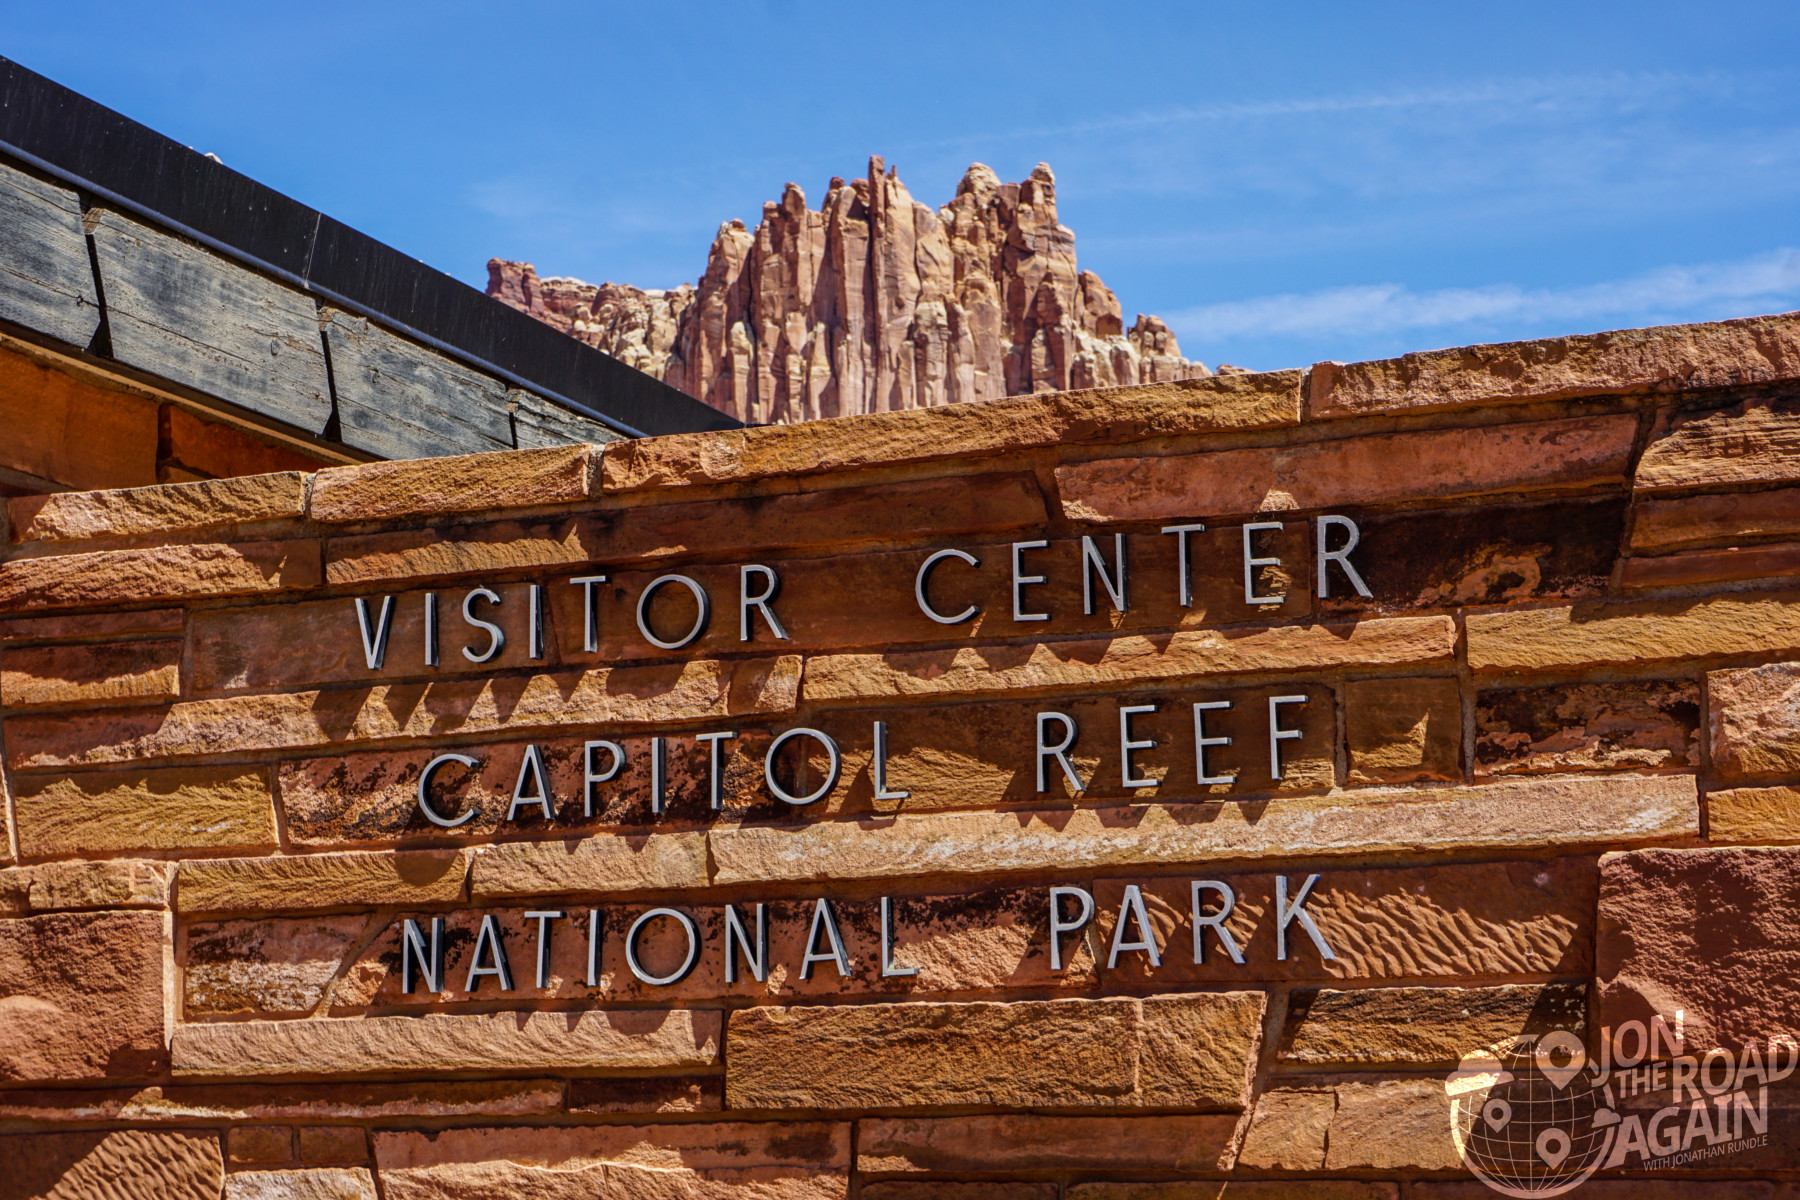 Capitol Reed National Park Visitor Center